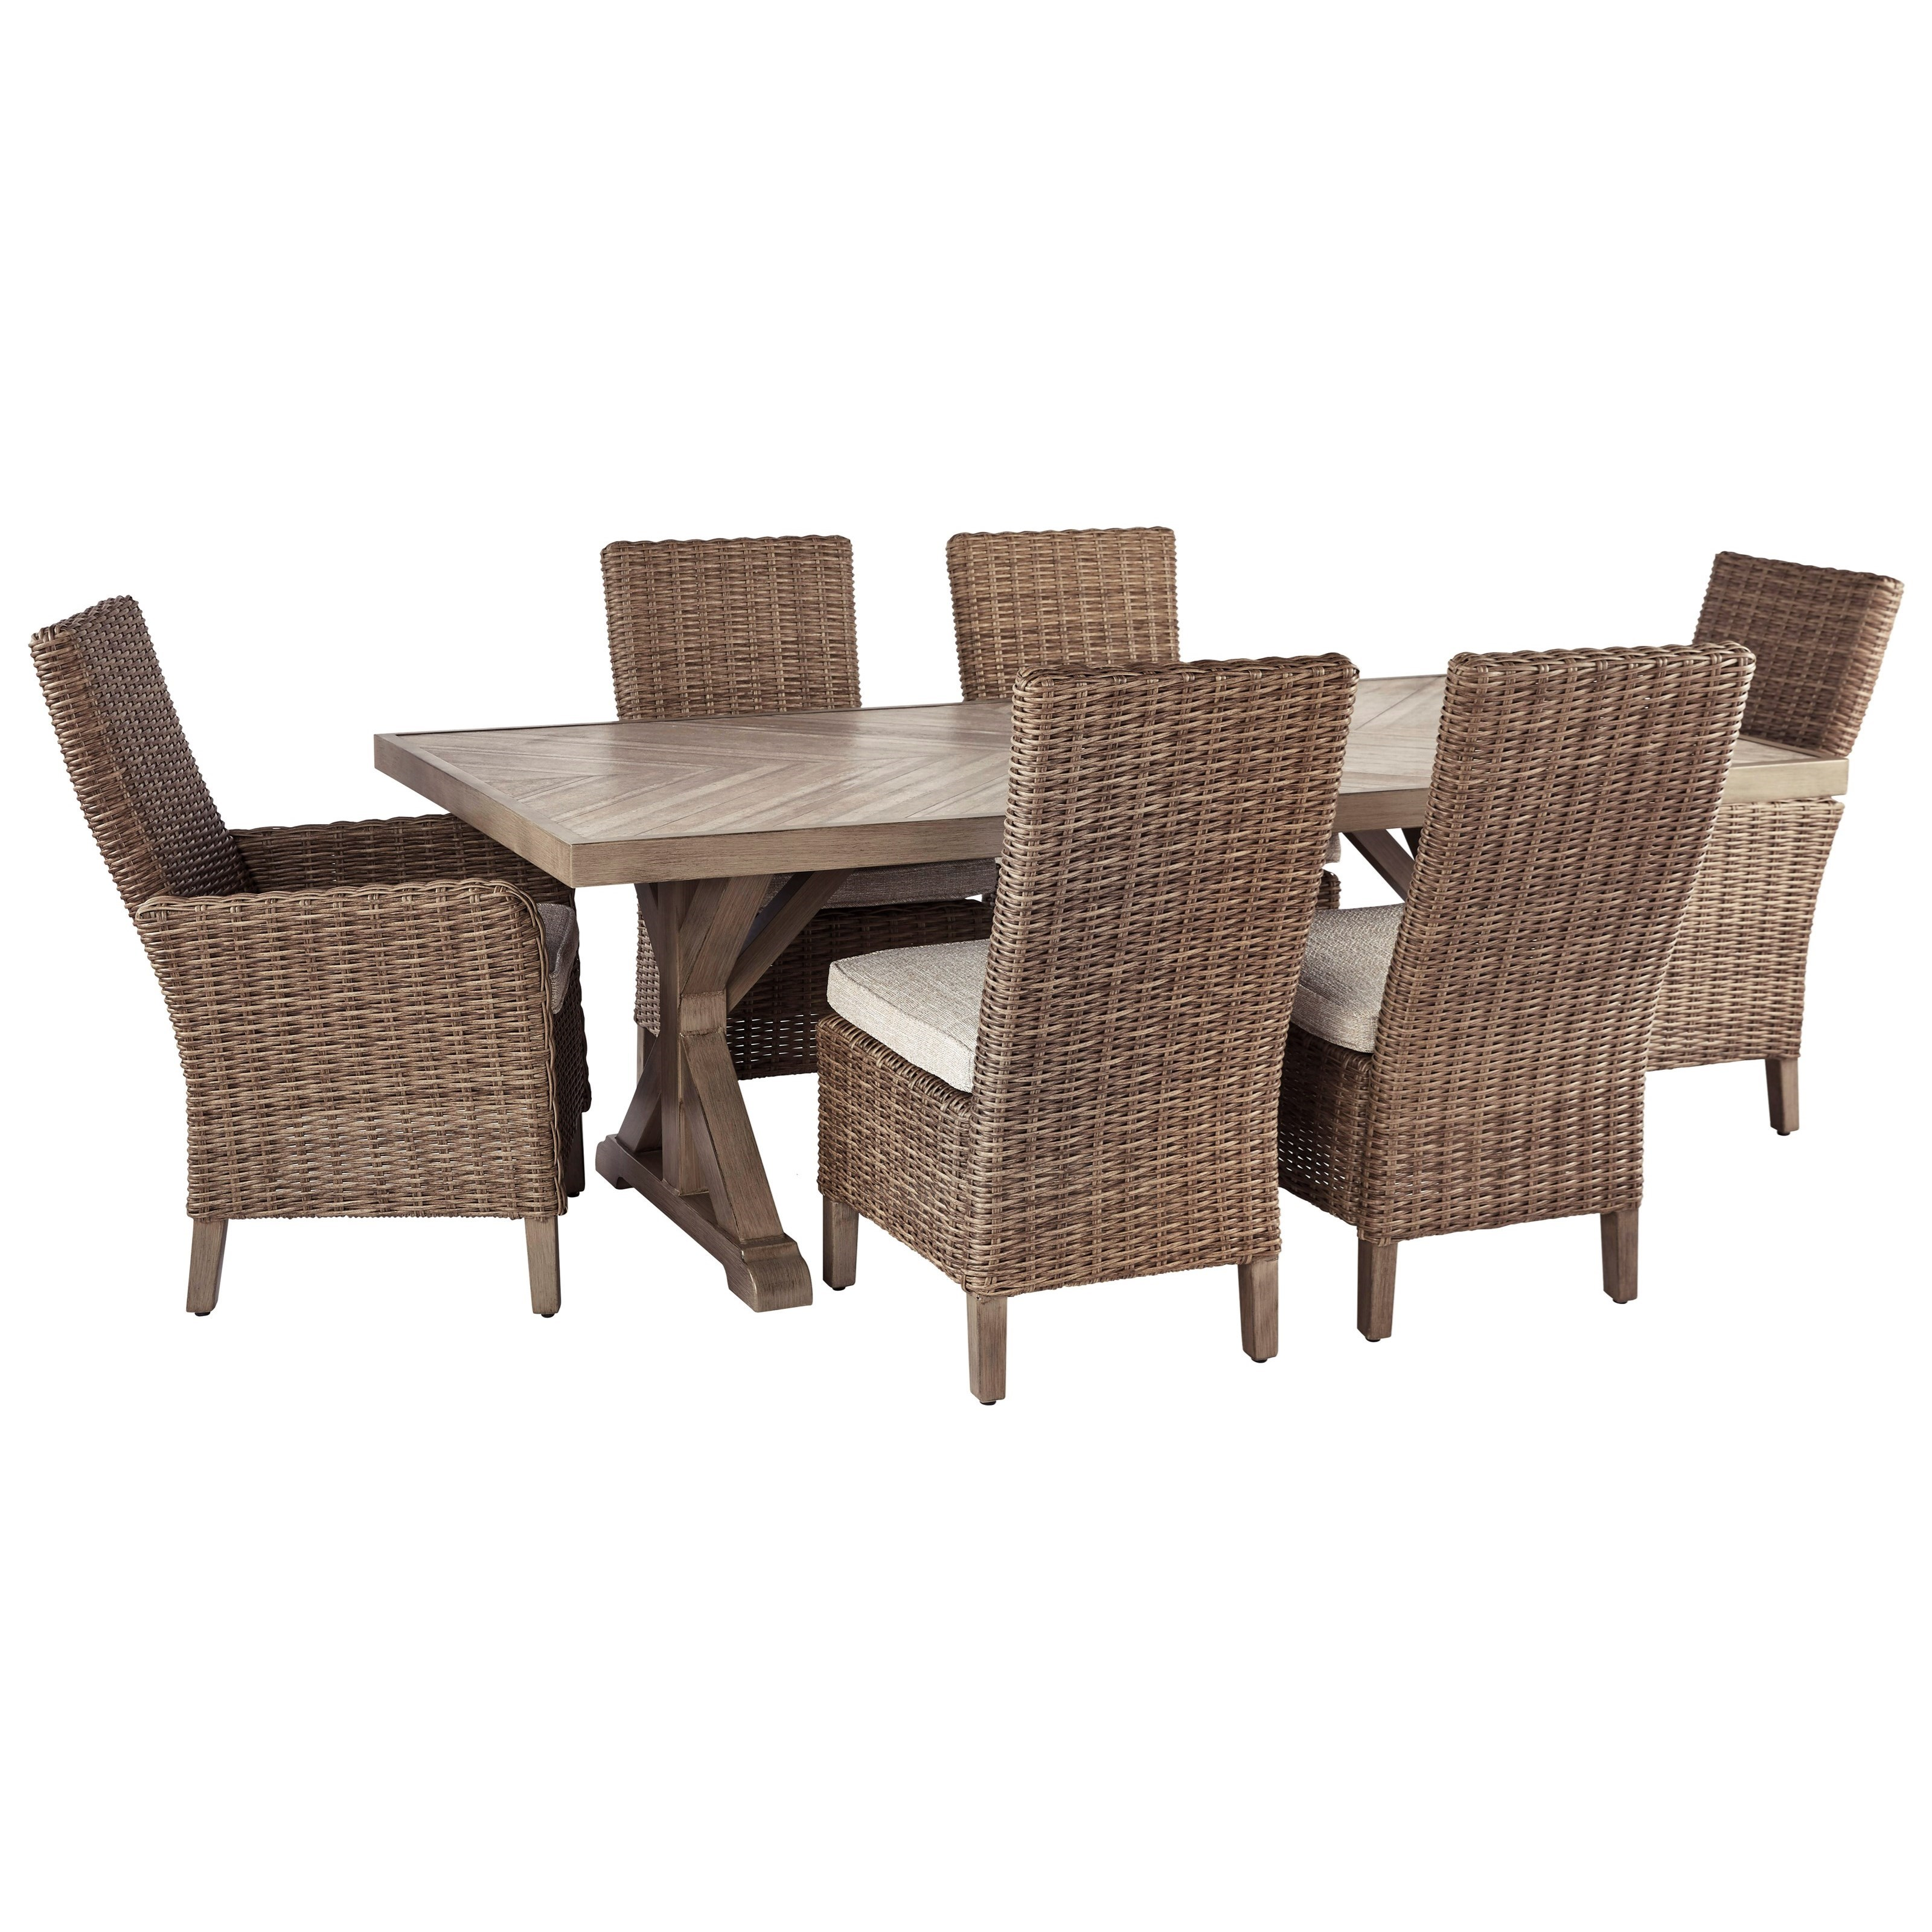 Beachcroft 7 Piece Outdoor Dining Set by Ashley (Signature Design) at Johnny Janosik